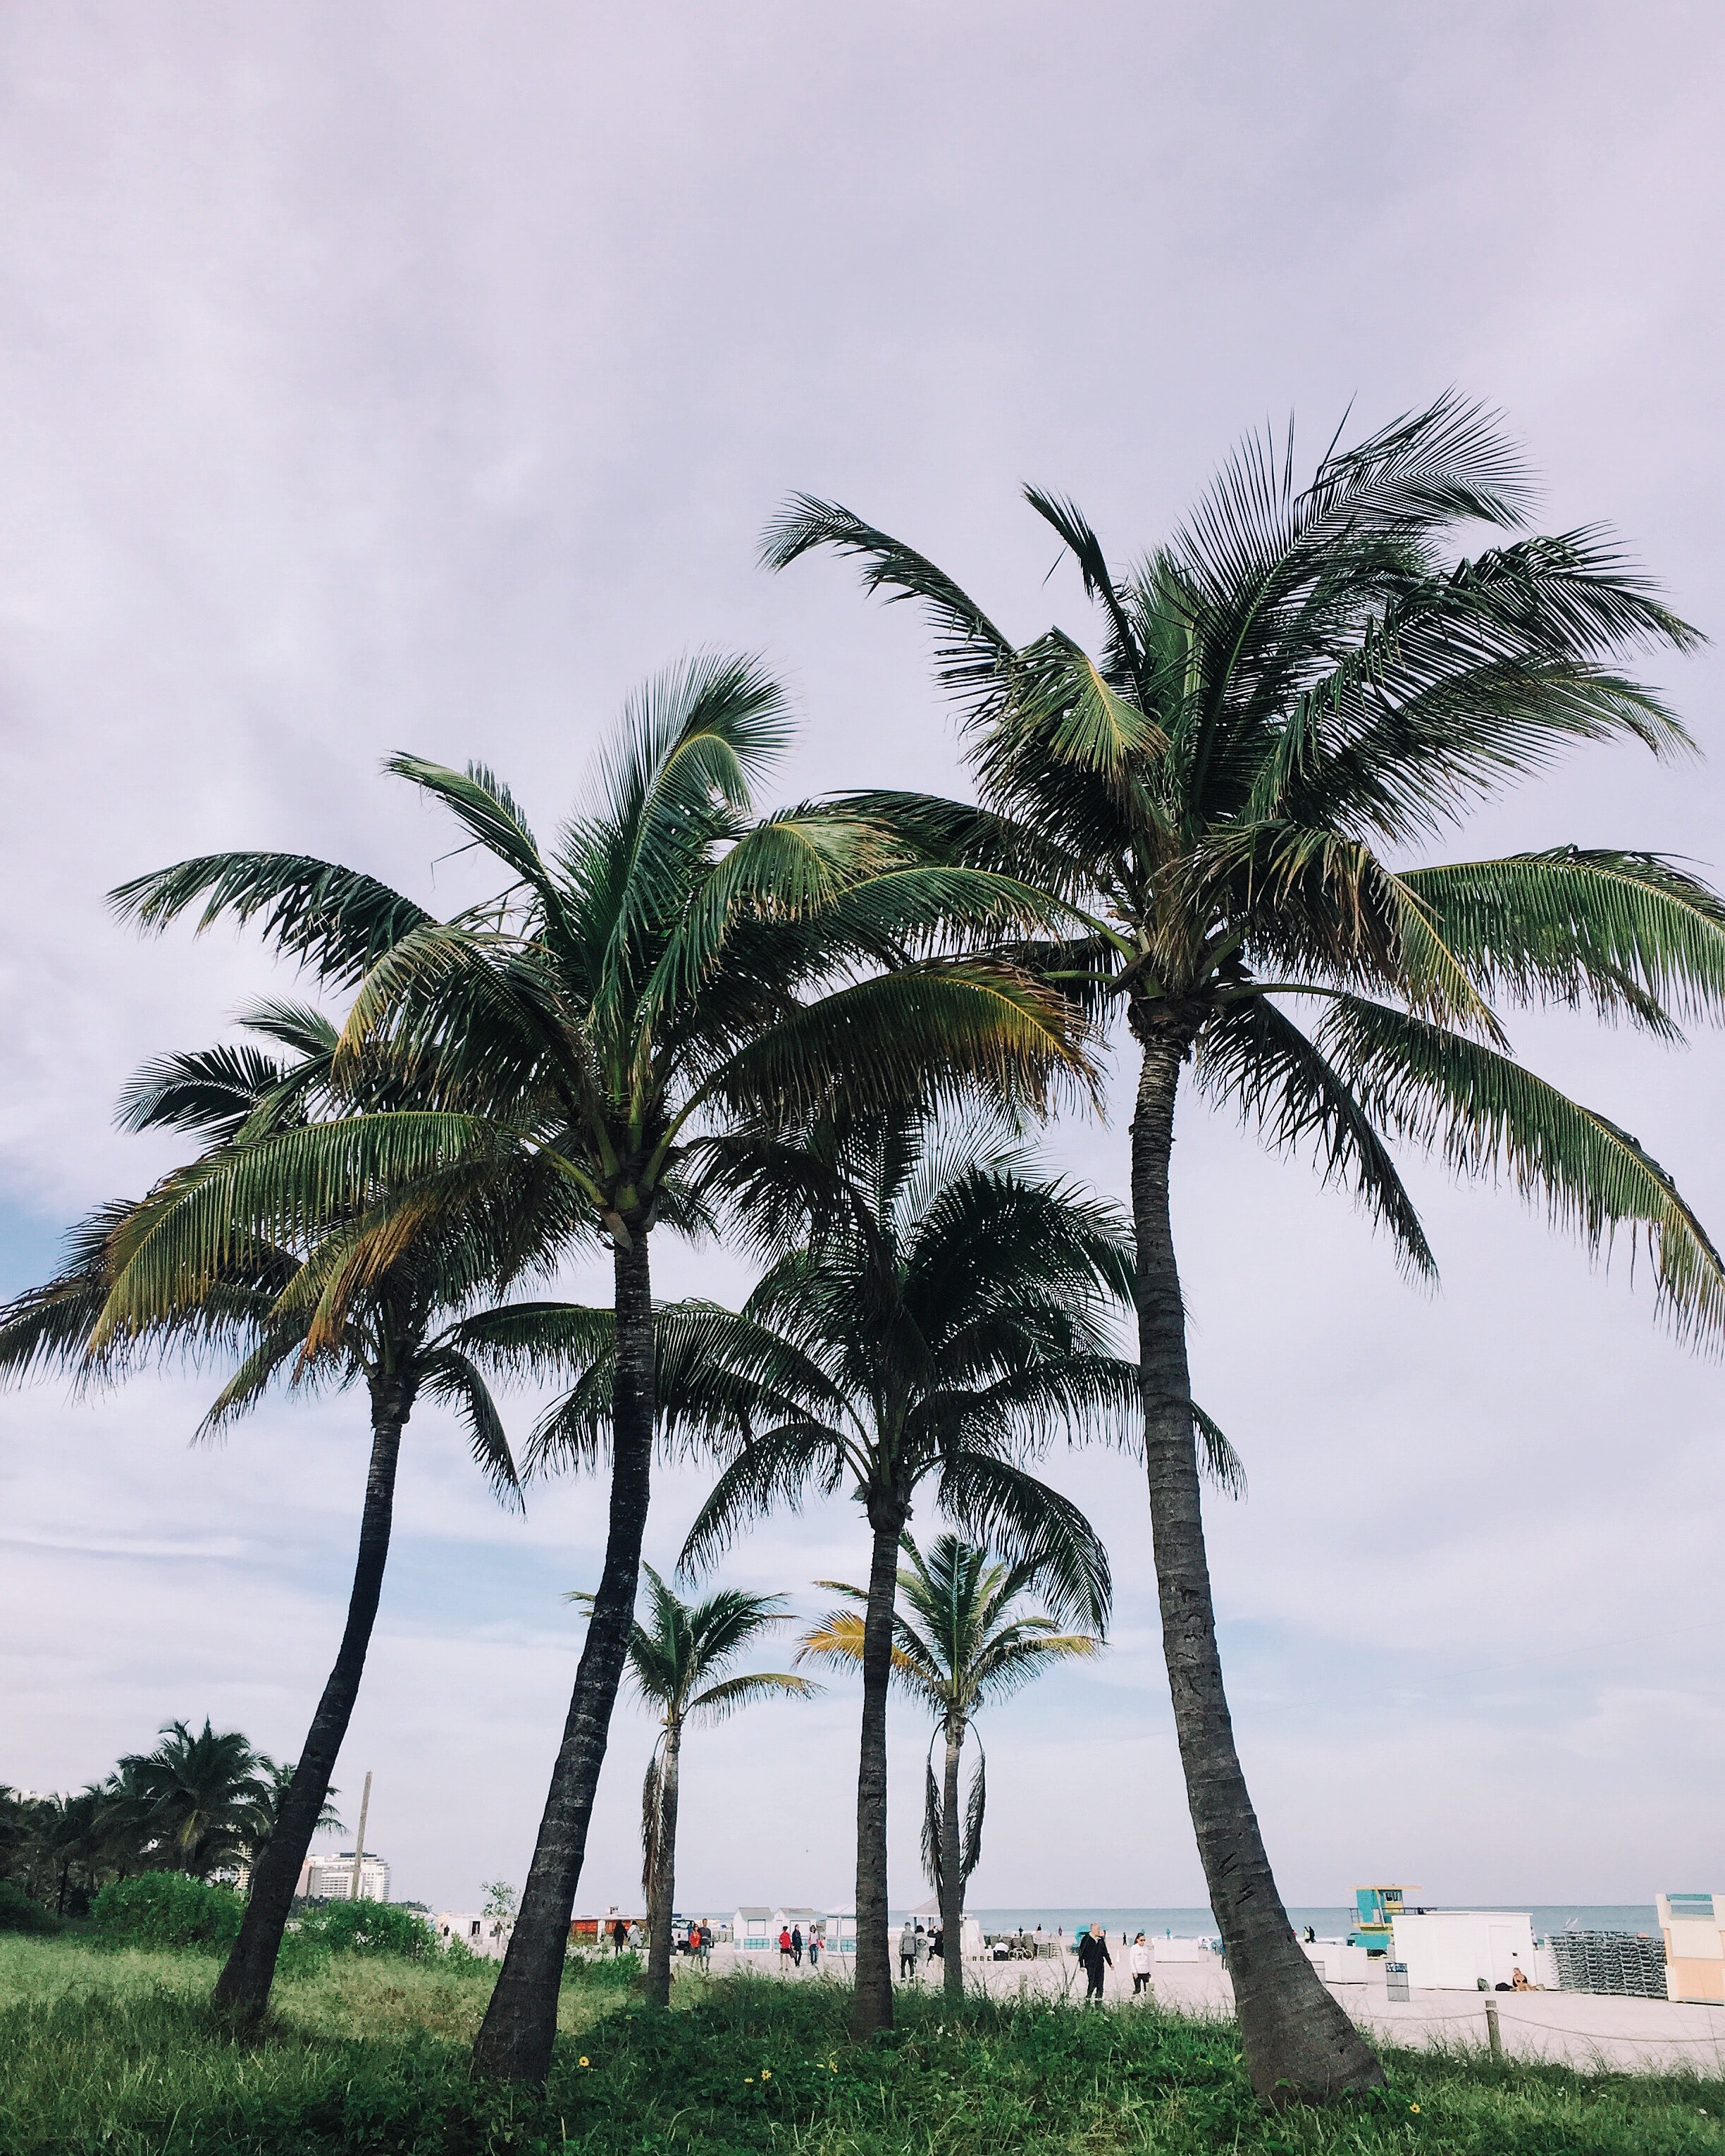 Palm trees on a coastline at South Beach, Miami Beach, Florida, United States